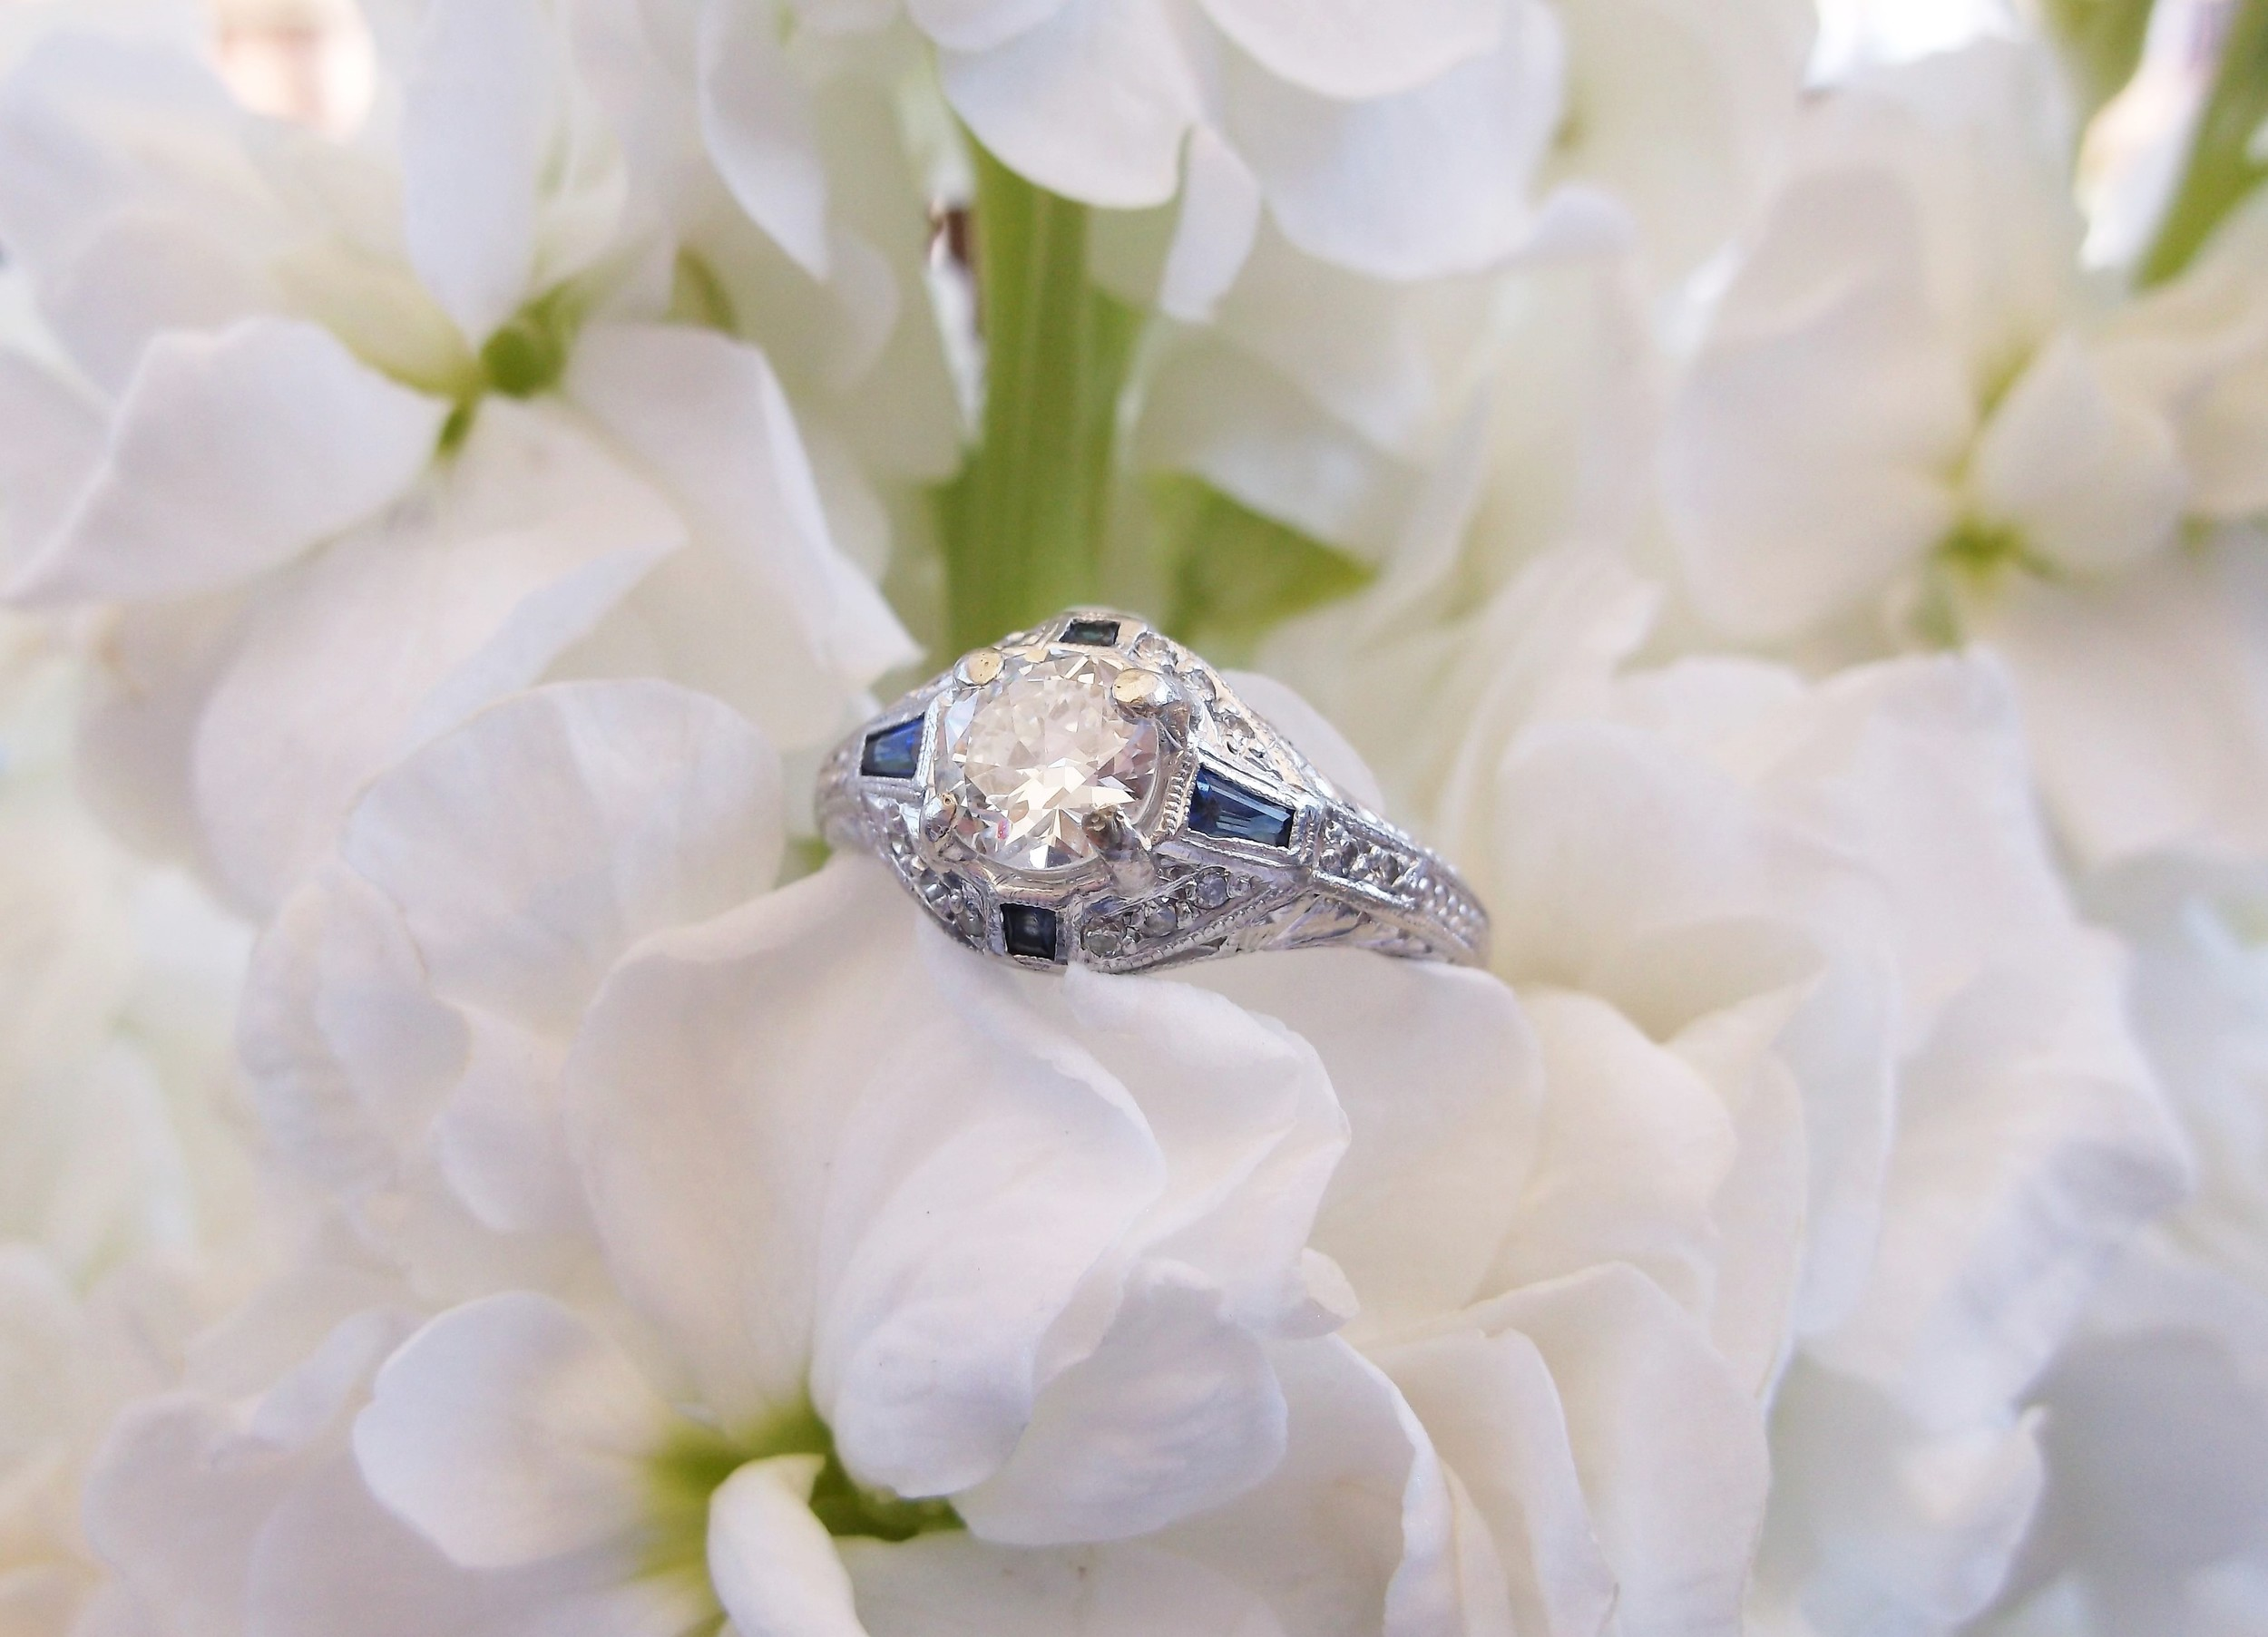 SOLD - 1920's Old European cut diamond ring with beautiful sapphire detail set in platinum with a 0.58 carat diamond in the center.